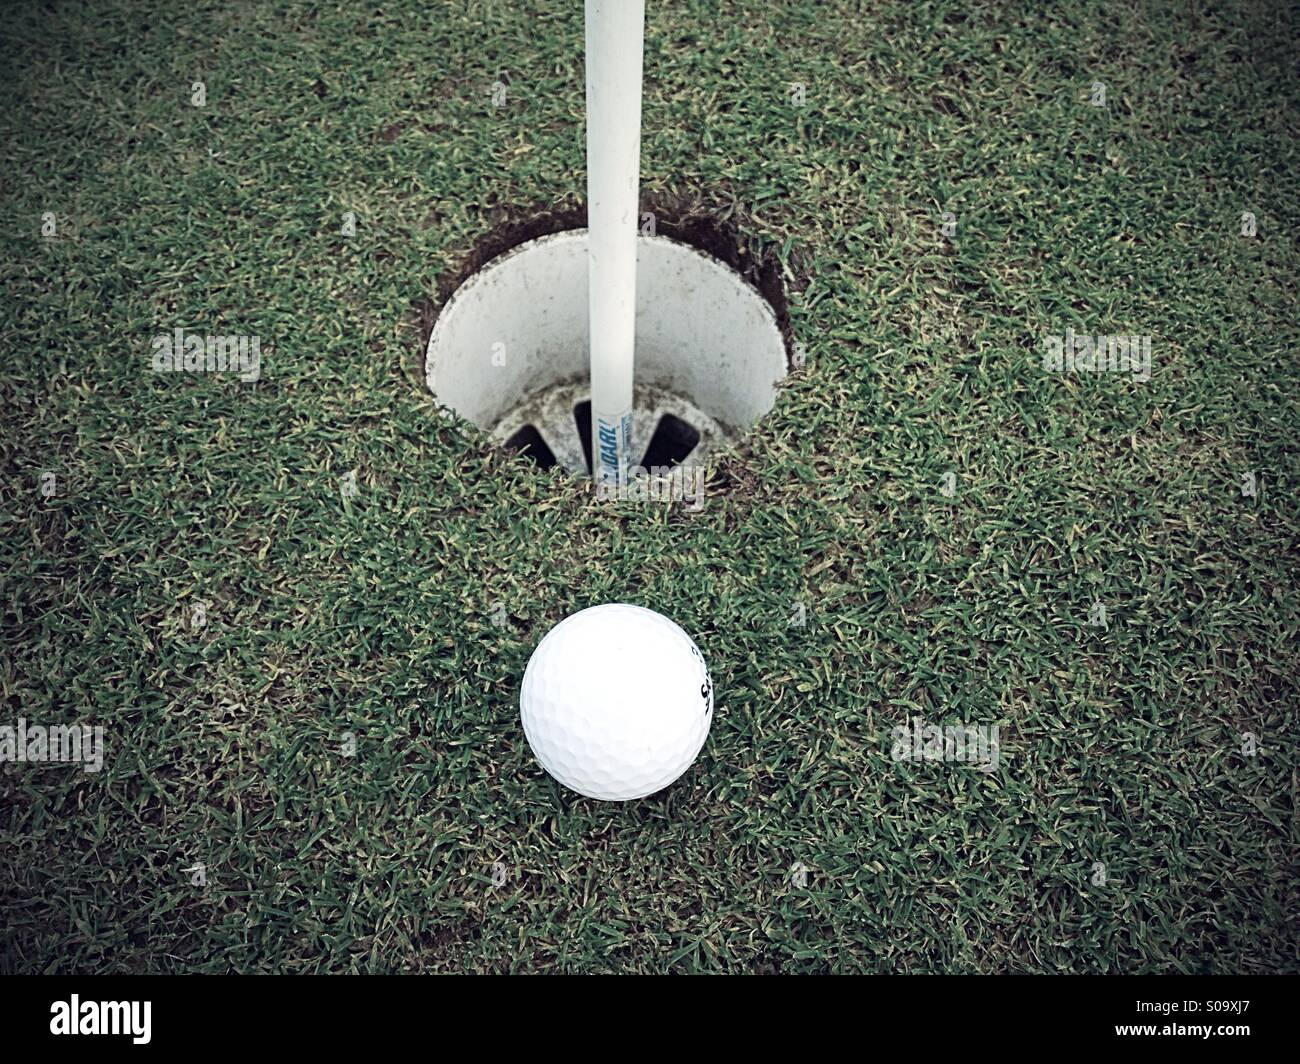 Golf ball near to hole - Stock Image